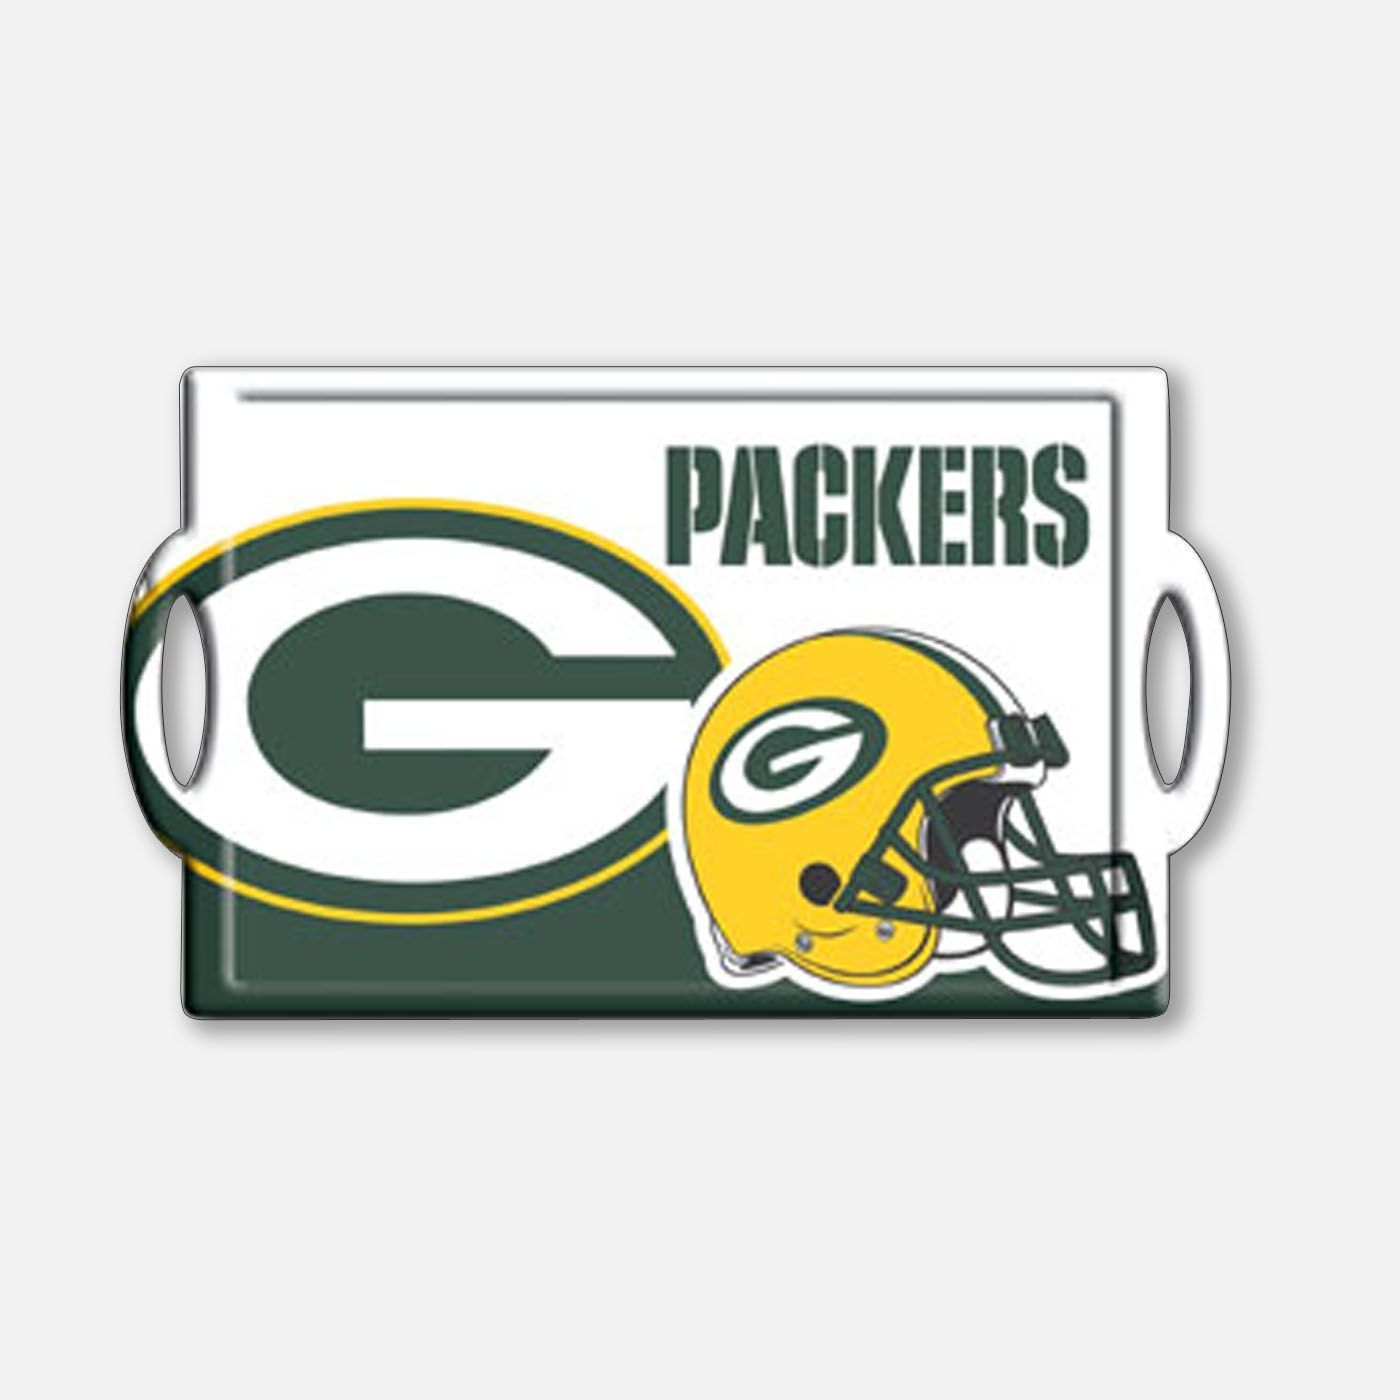 Green Bay Packers Green Bay Packers Serving Tray Shopko Com Green Bay Packers Packers Green Bay